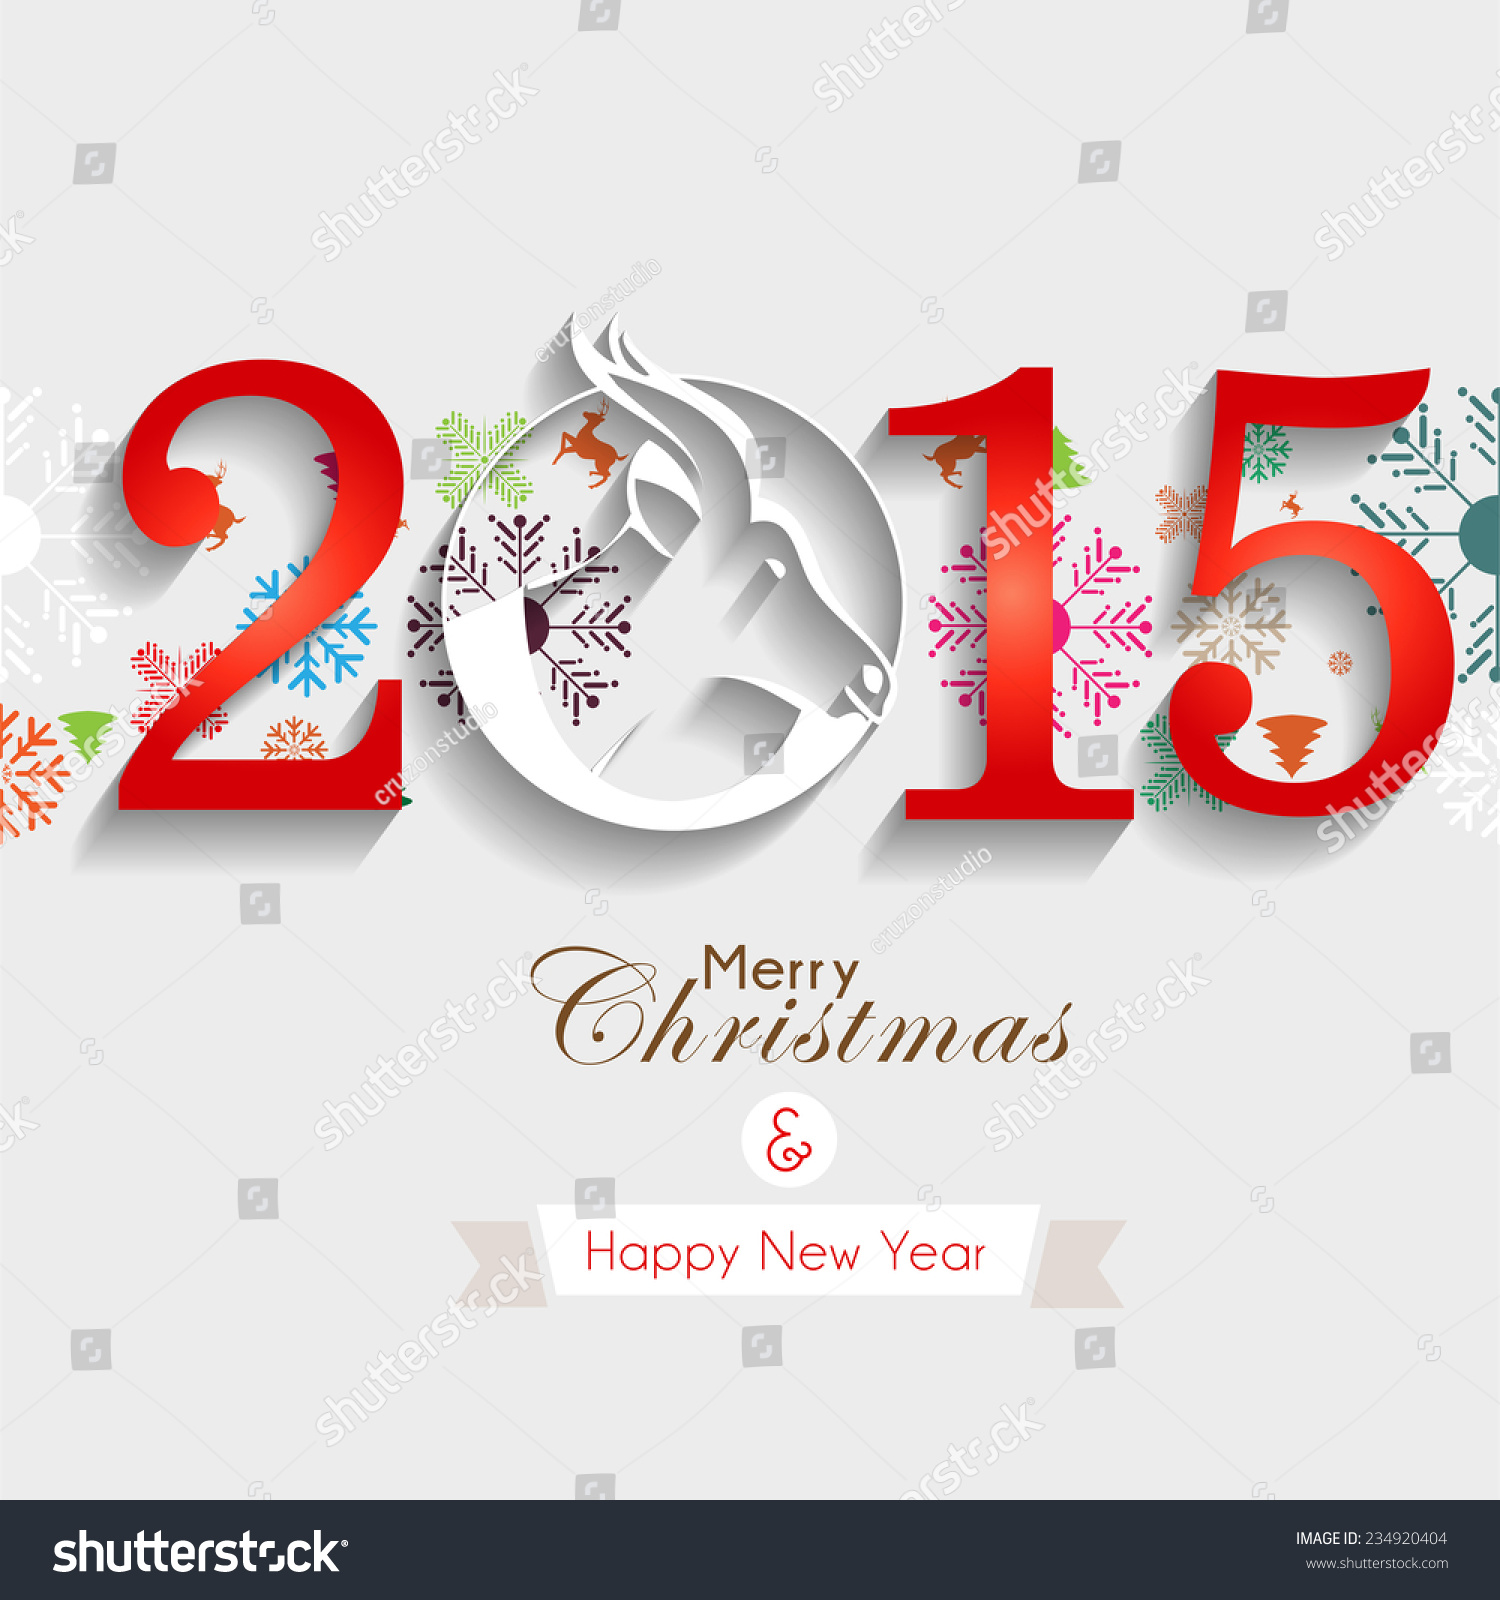 Happy New Year 2015 Greeting Design Stock Vector Royalty Free